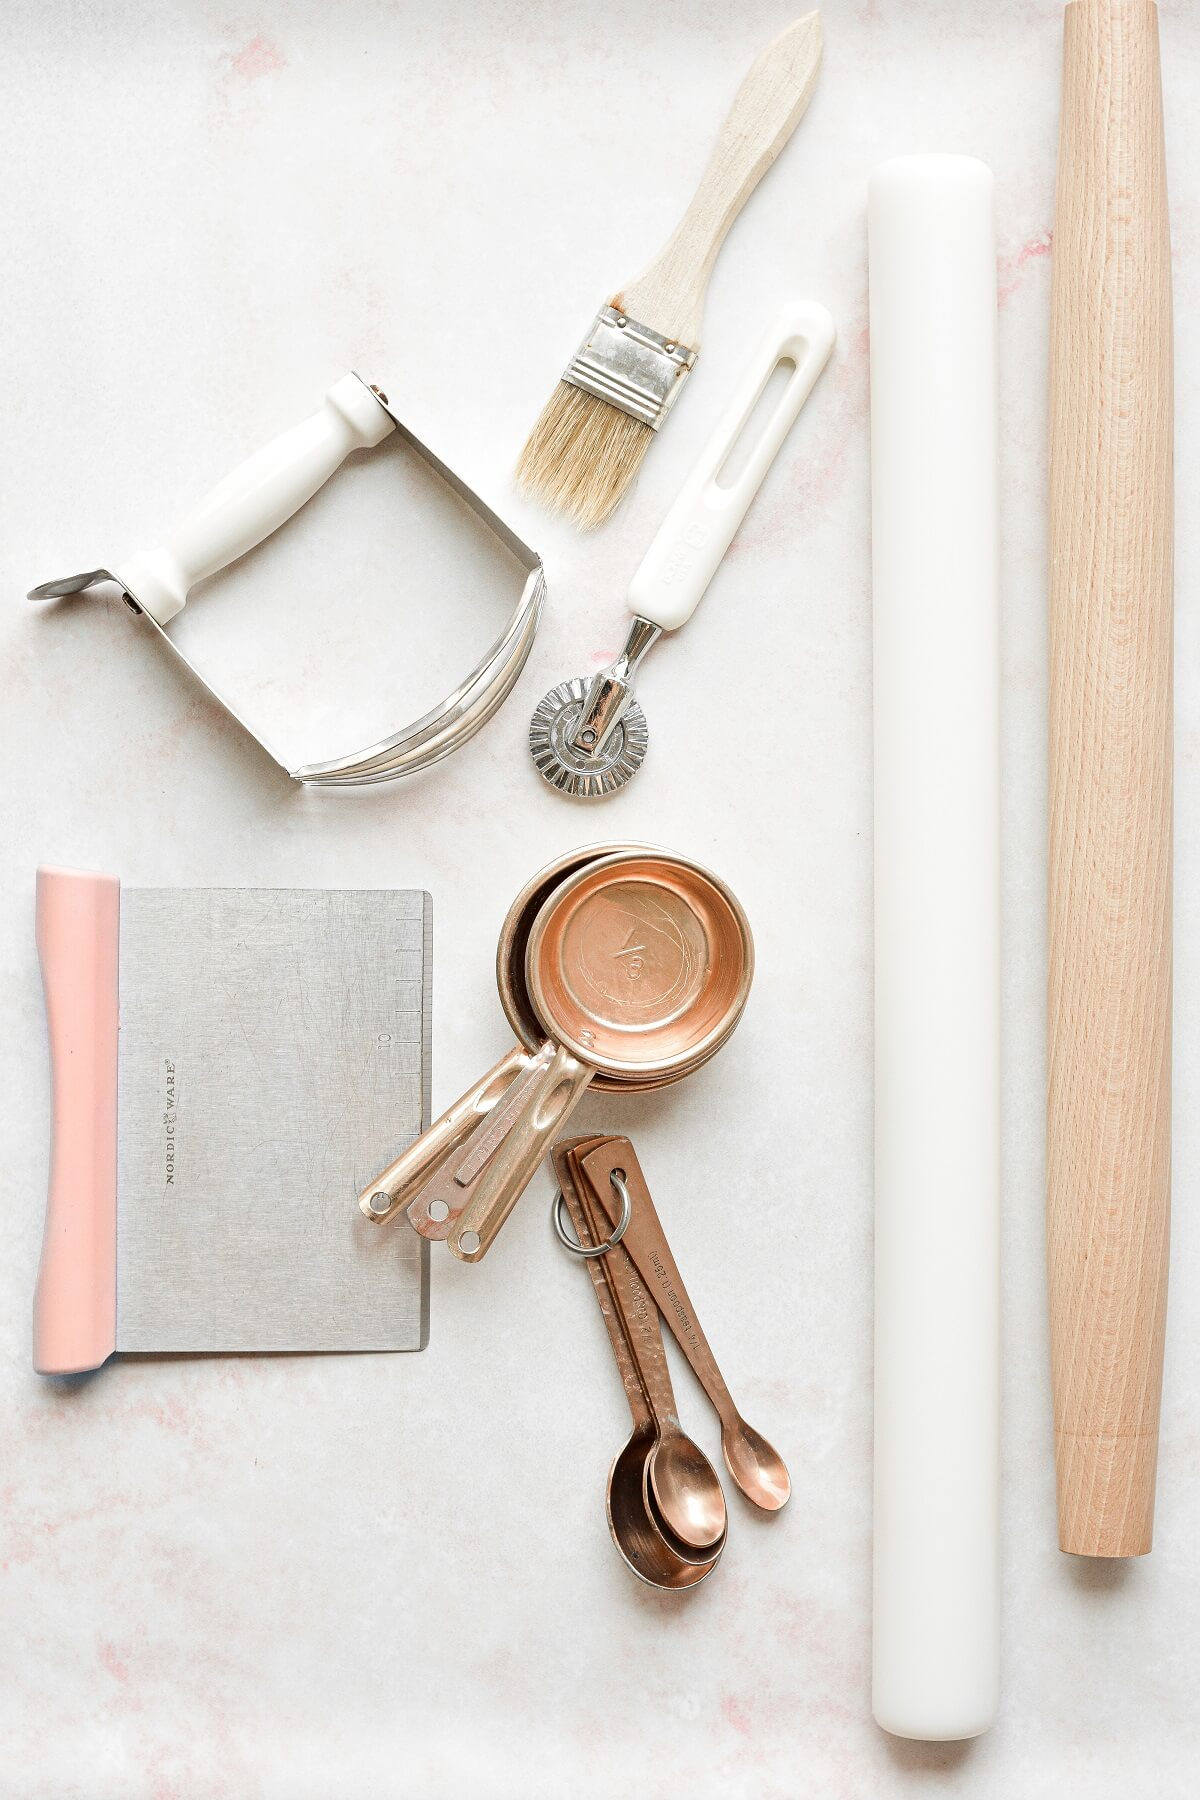 Tools for making pie dough.